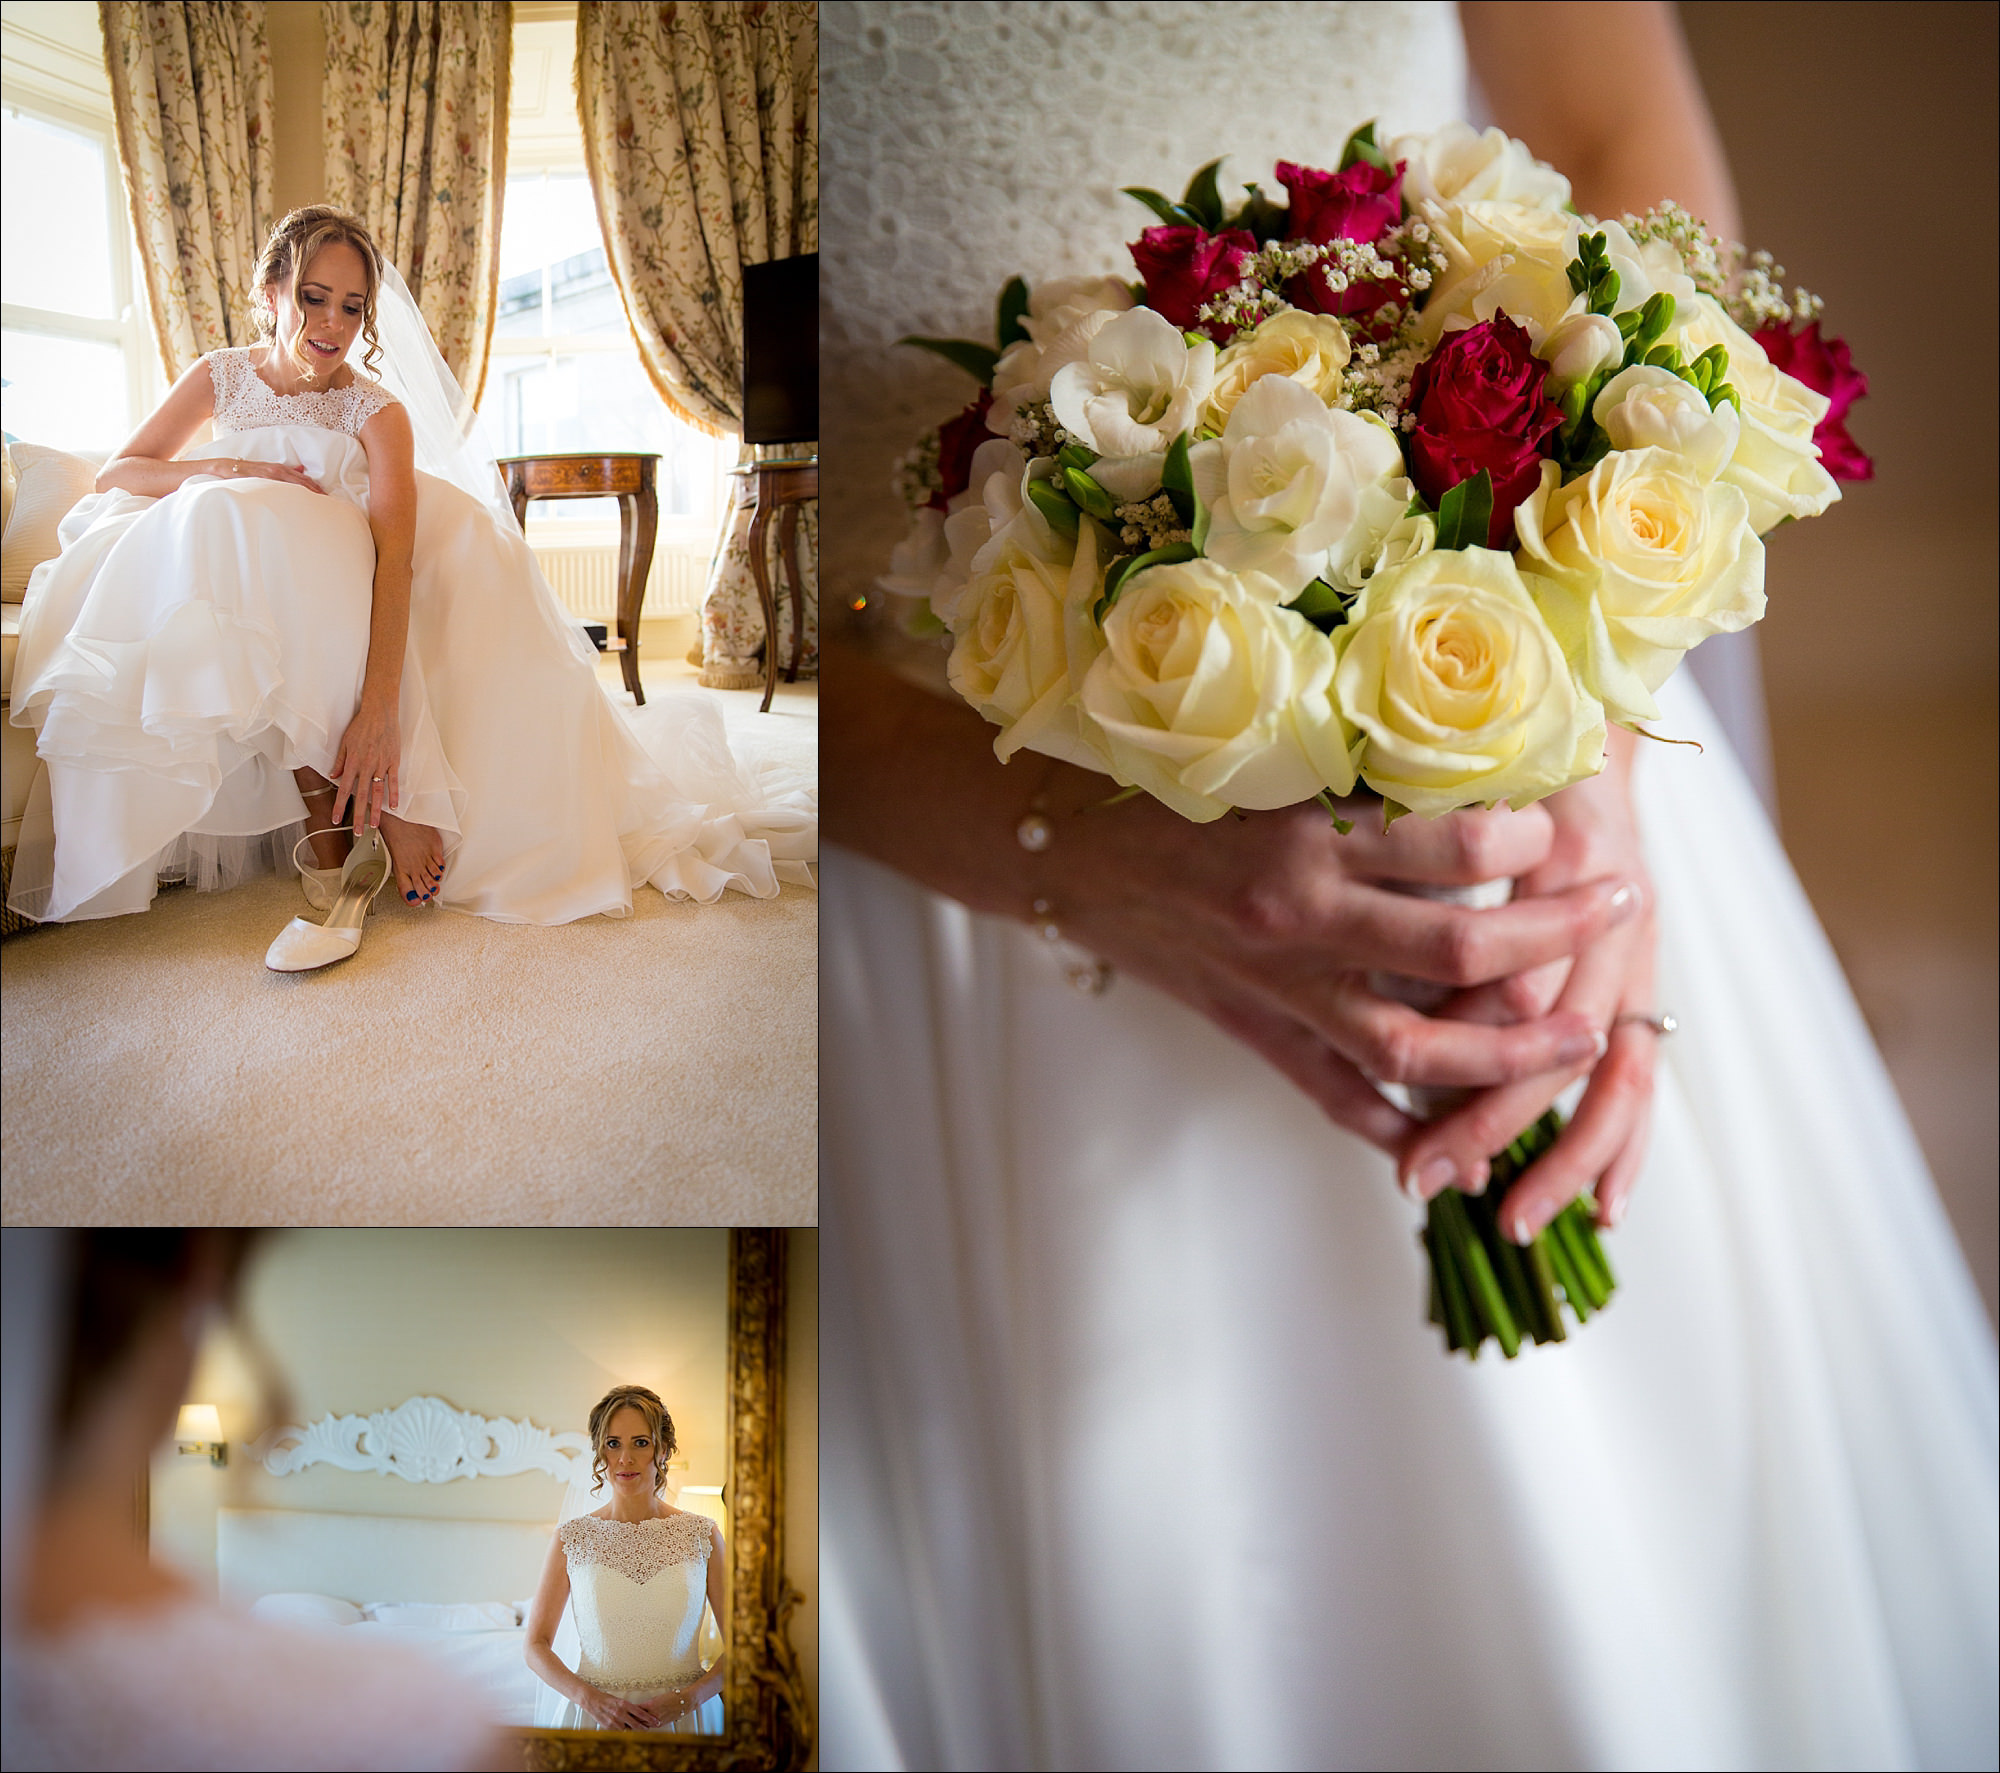 dublin wedding photographer david duignan photography tankardstown weddings slane rathfeigh church ireland 0011